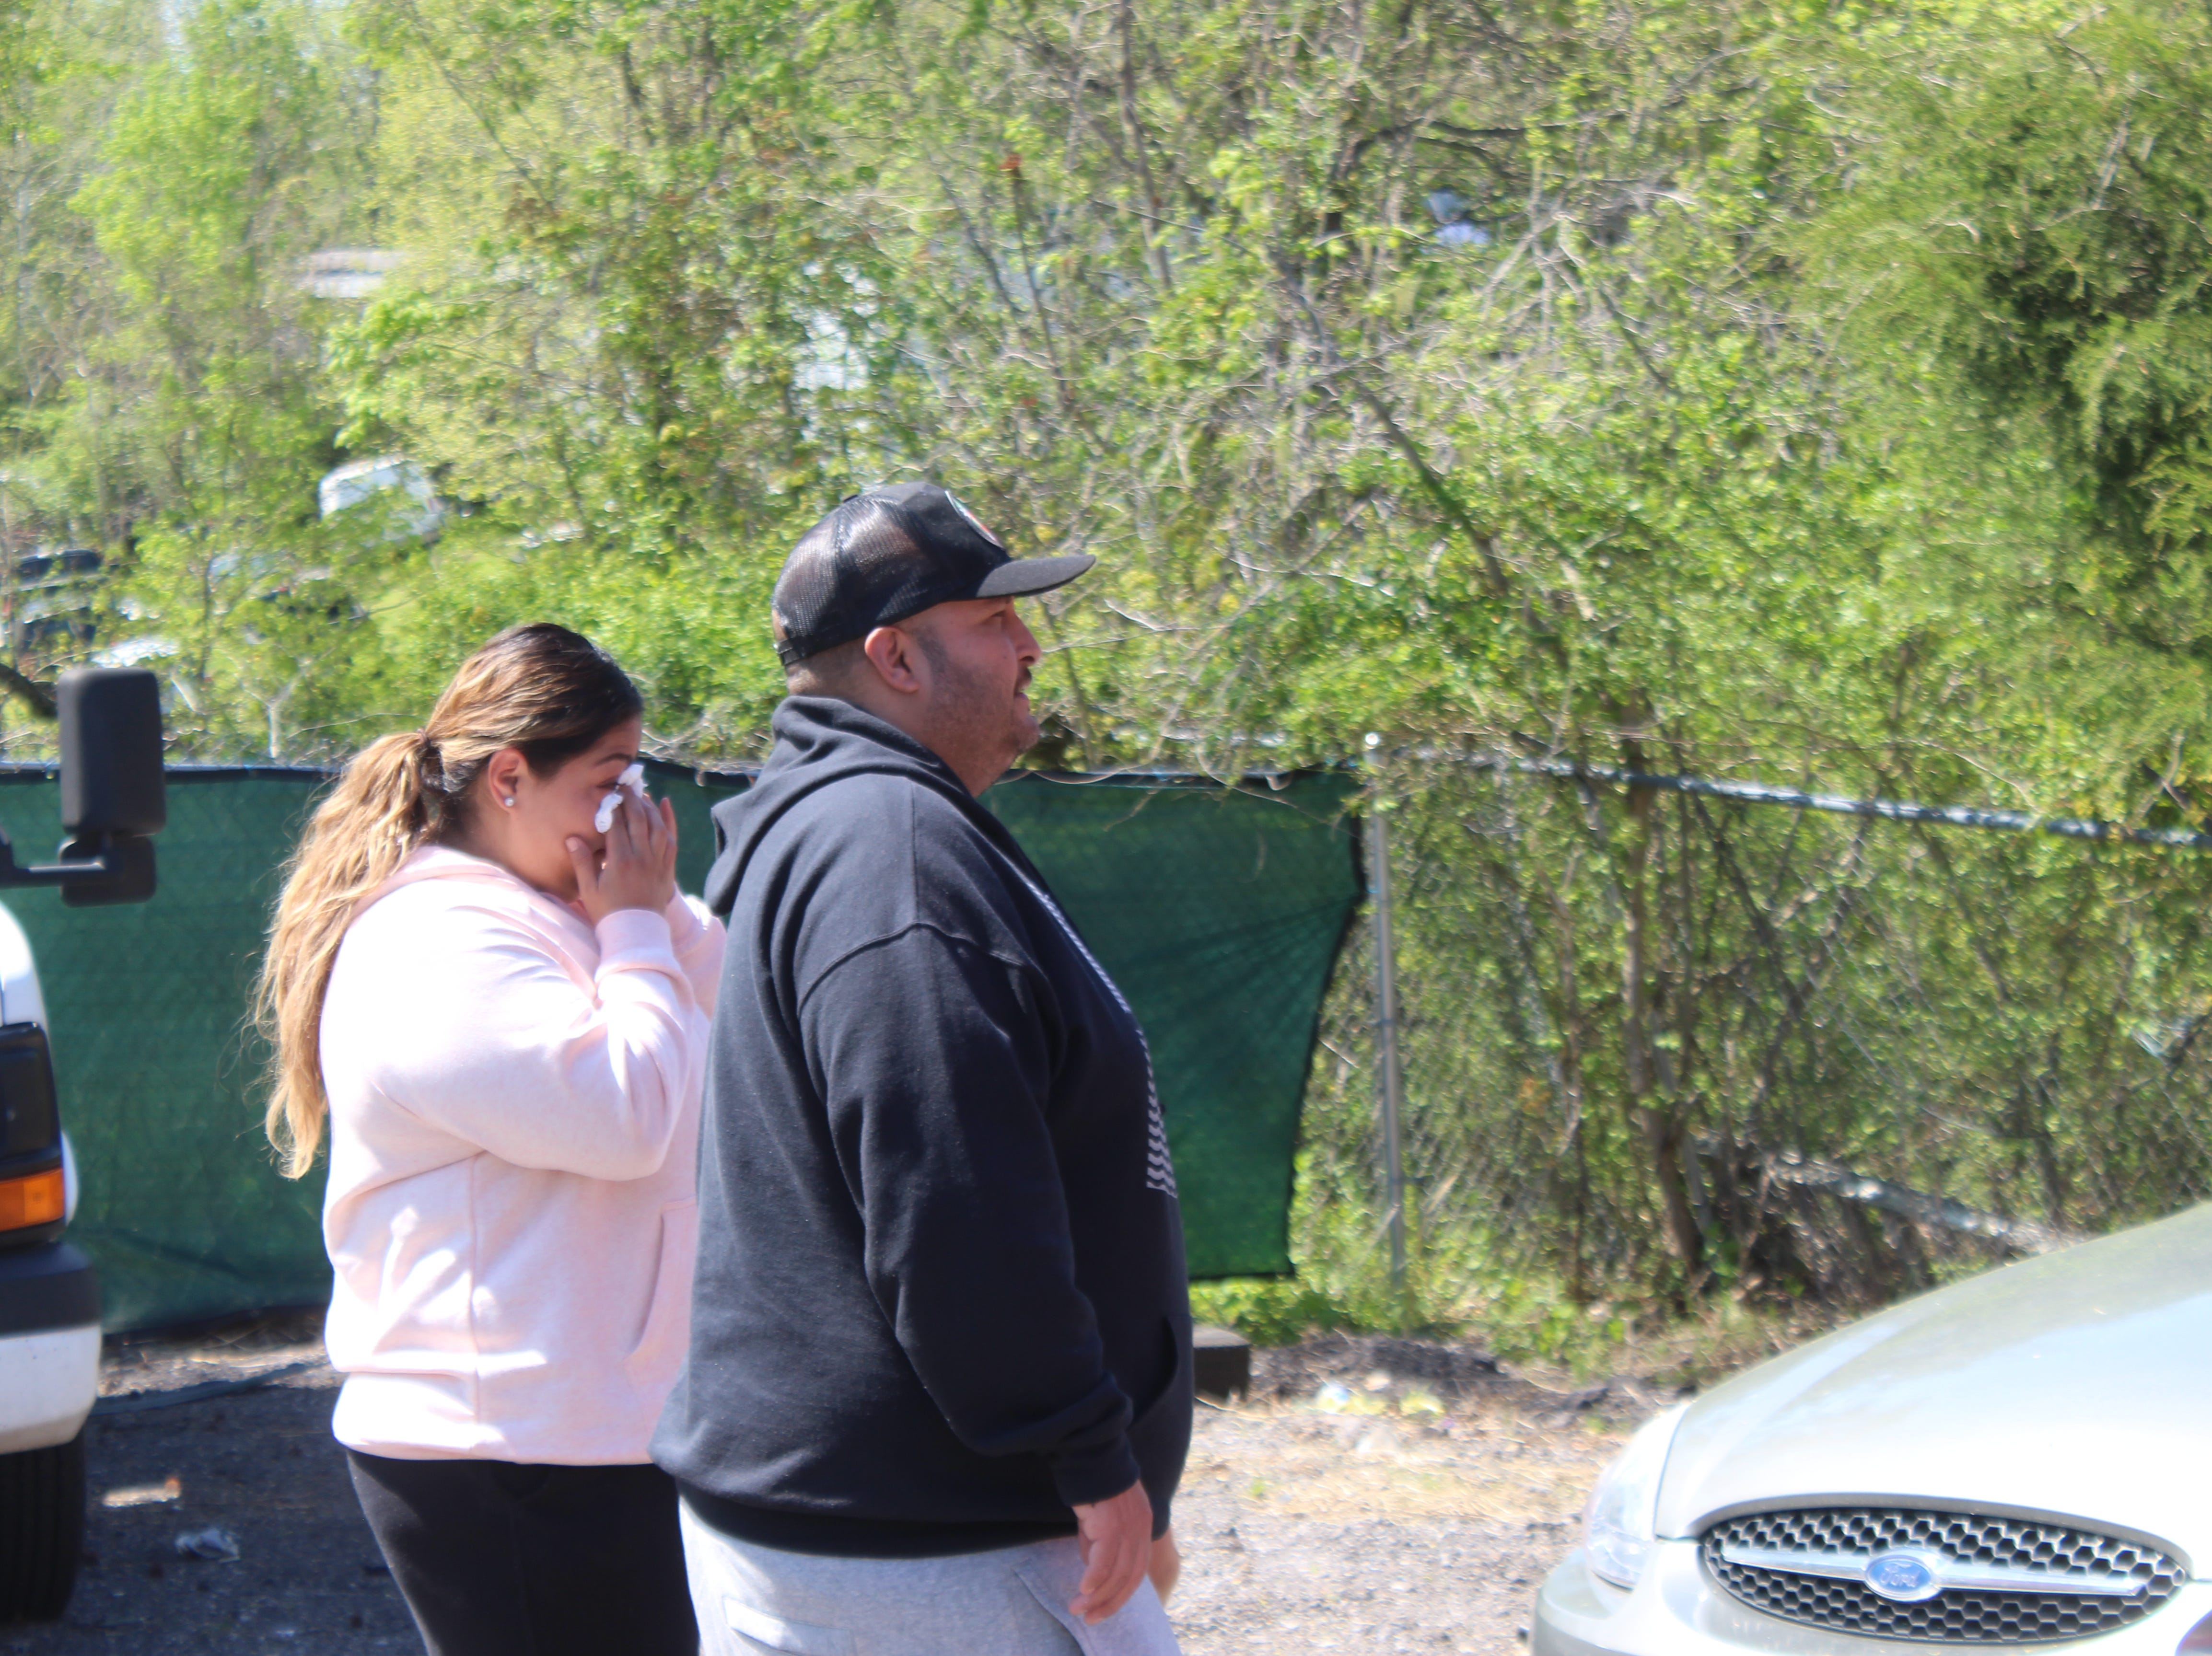 Adrian and Diana Gonzalez get their first look at their Fatboy Tacos trailer, which was destroyed in a wreck in Clarksville on Saturday, April 13, 2019.